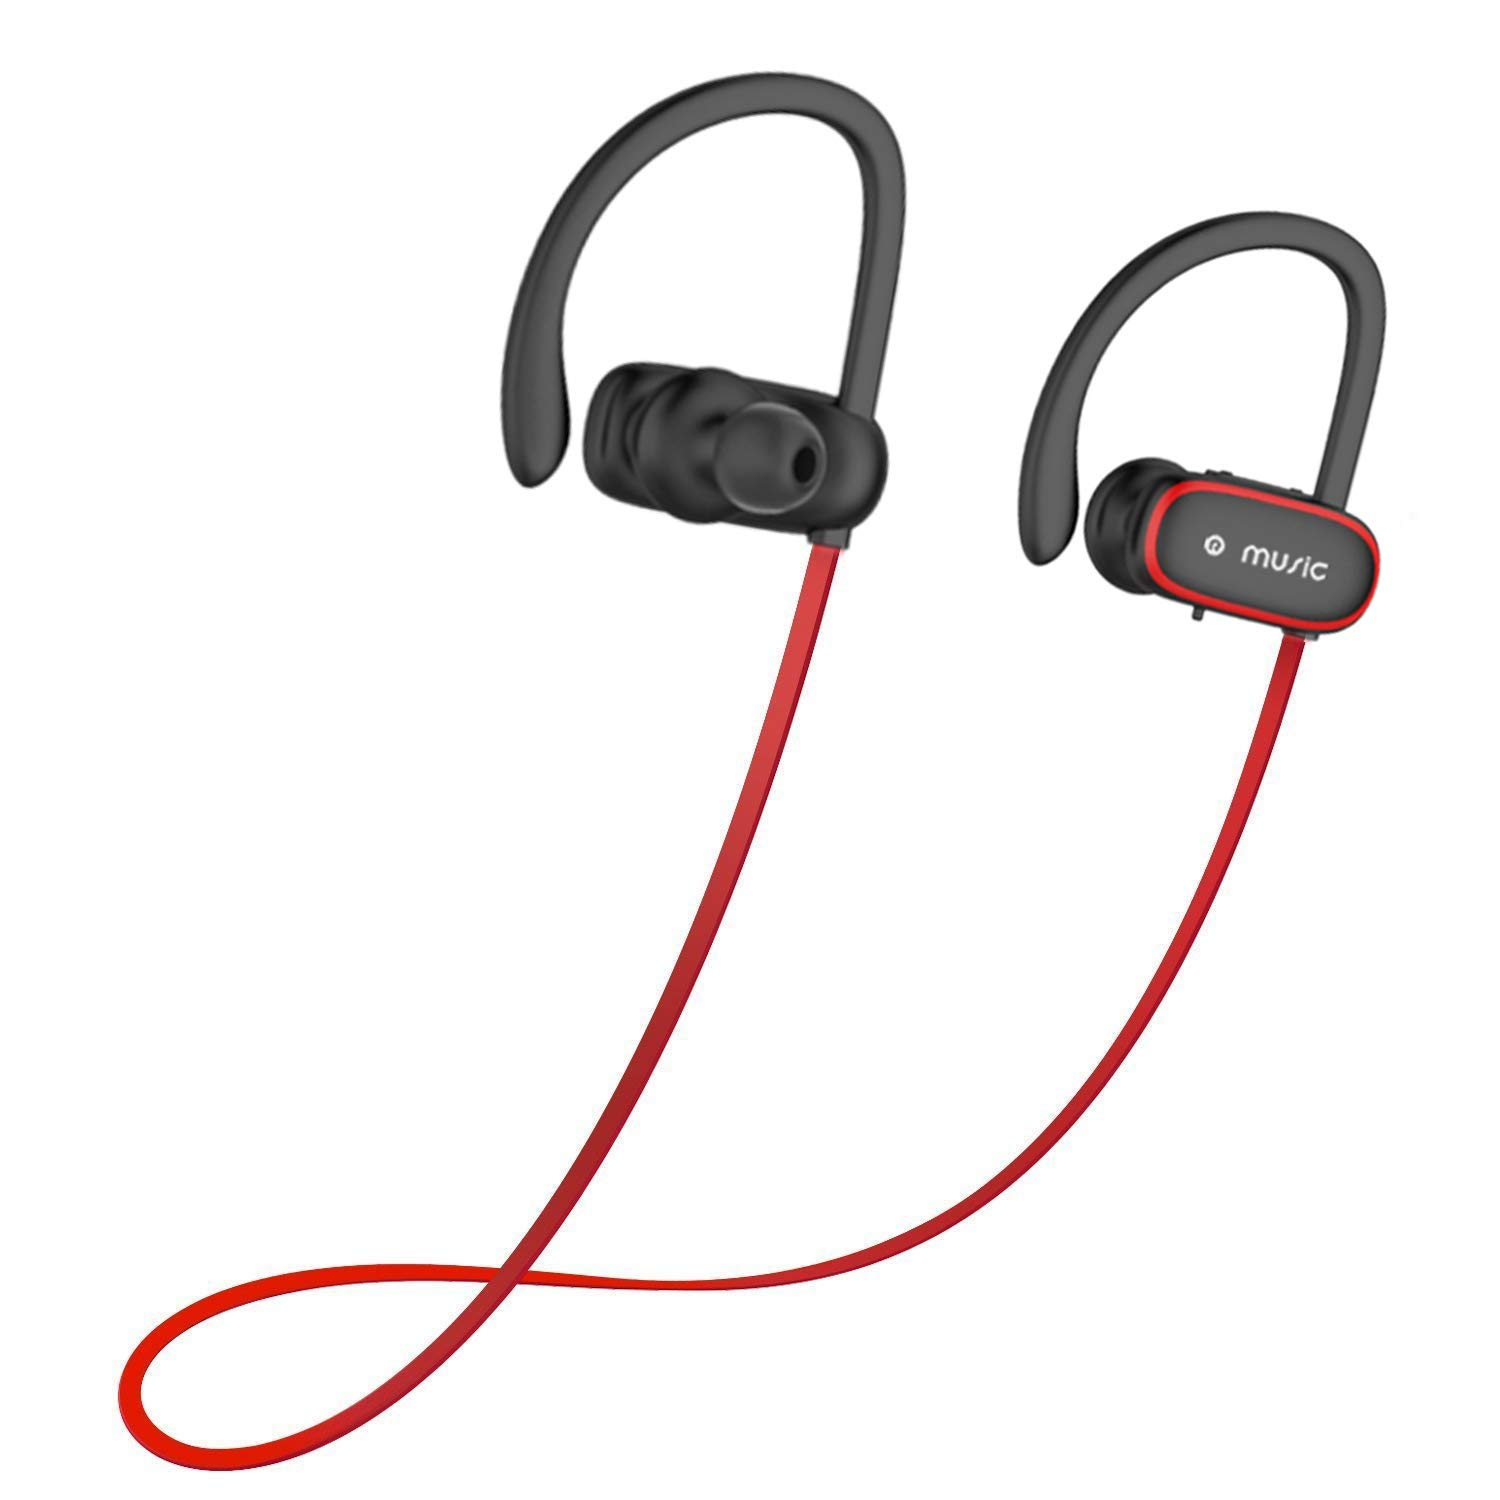 Blutooth Headphones, Benefast 4.2 EDR Wireless Headset in-Ear Eearbuds Microphone, Sweatproof, CVC Noise Cancelling, HiFi Stereo Eearphones Sports, Running, Gym Workout (Red) 103019CA